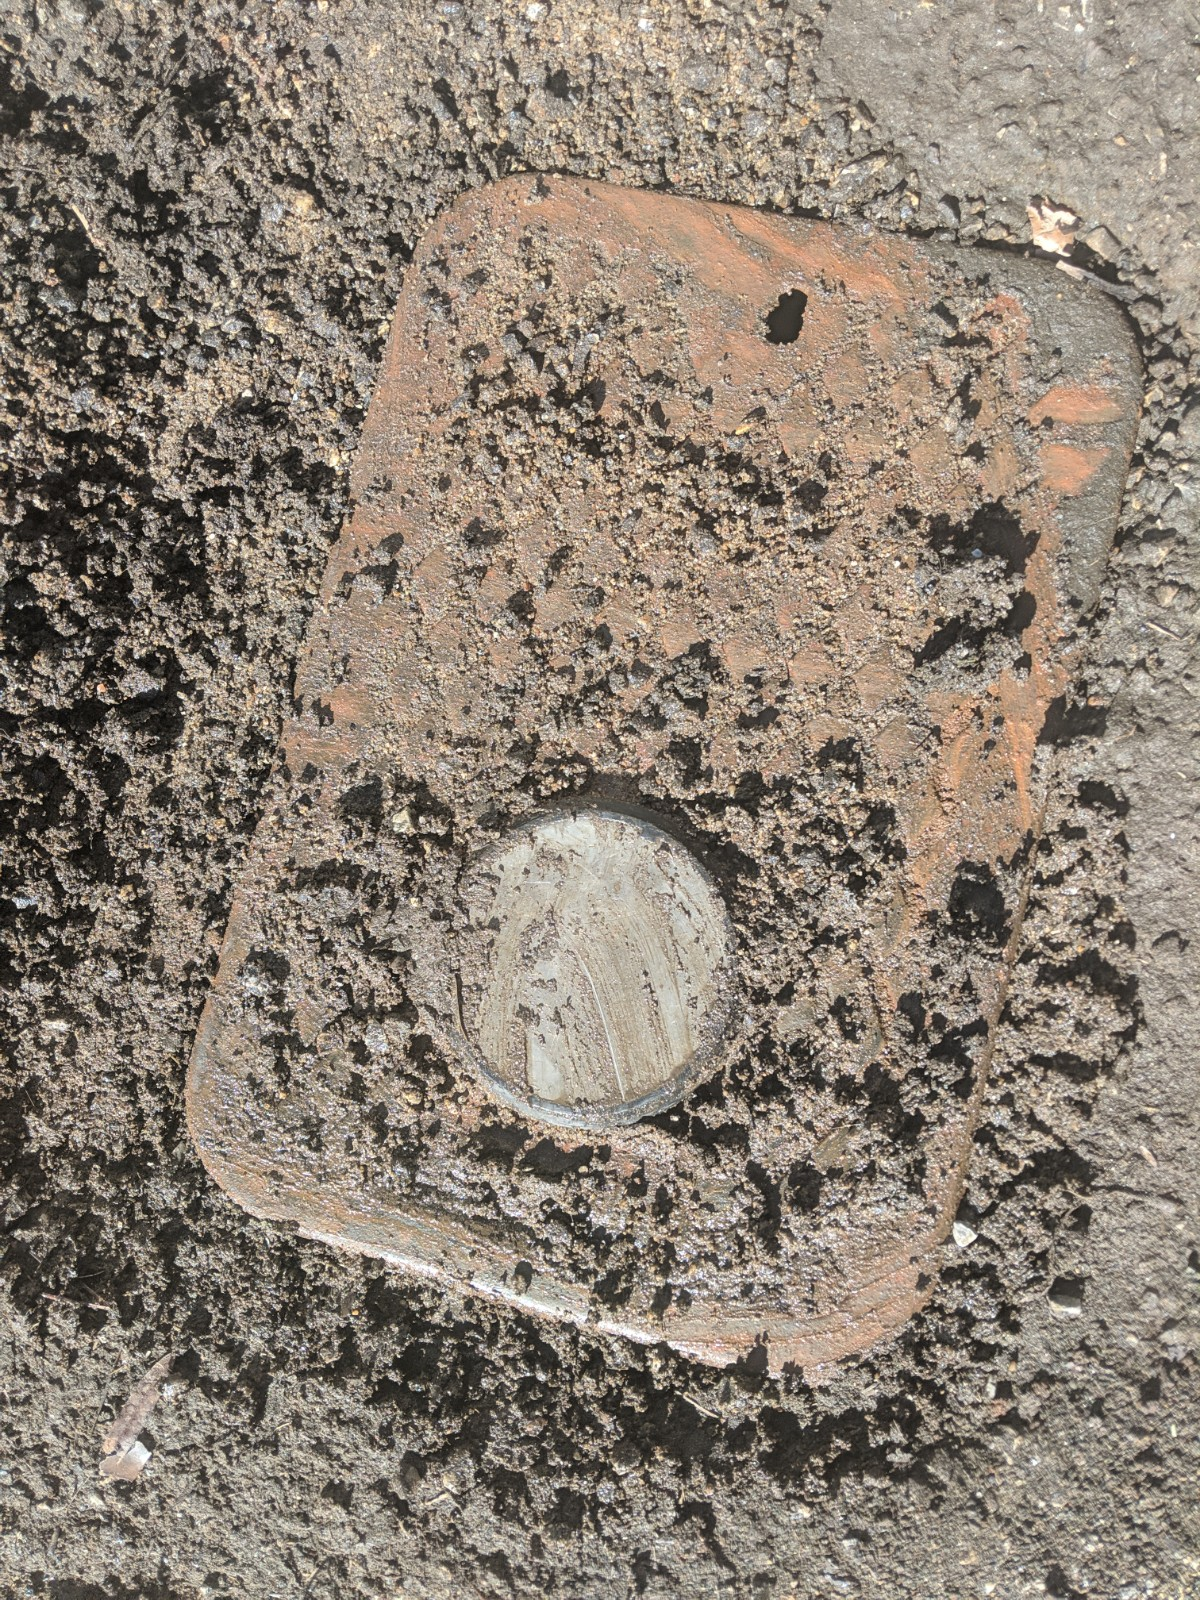 Unburied water meter.